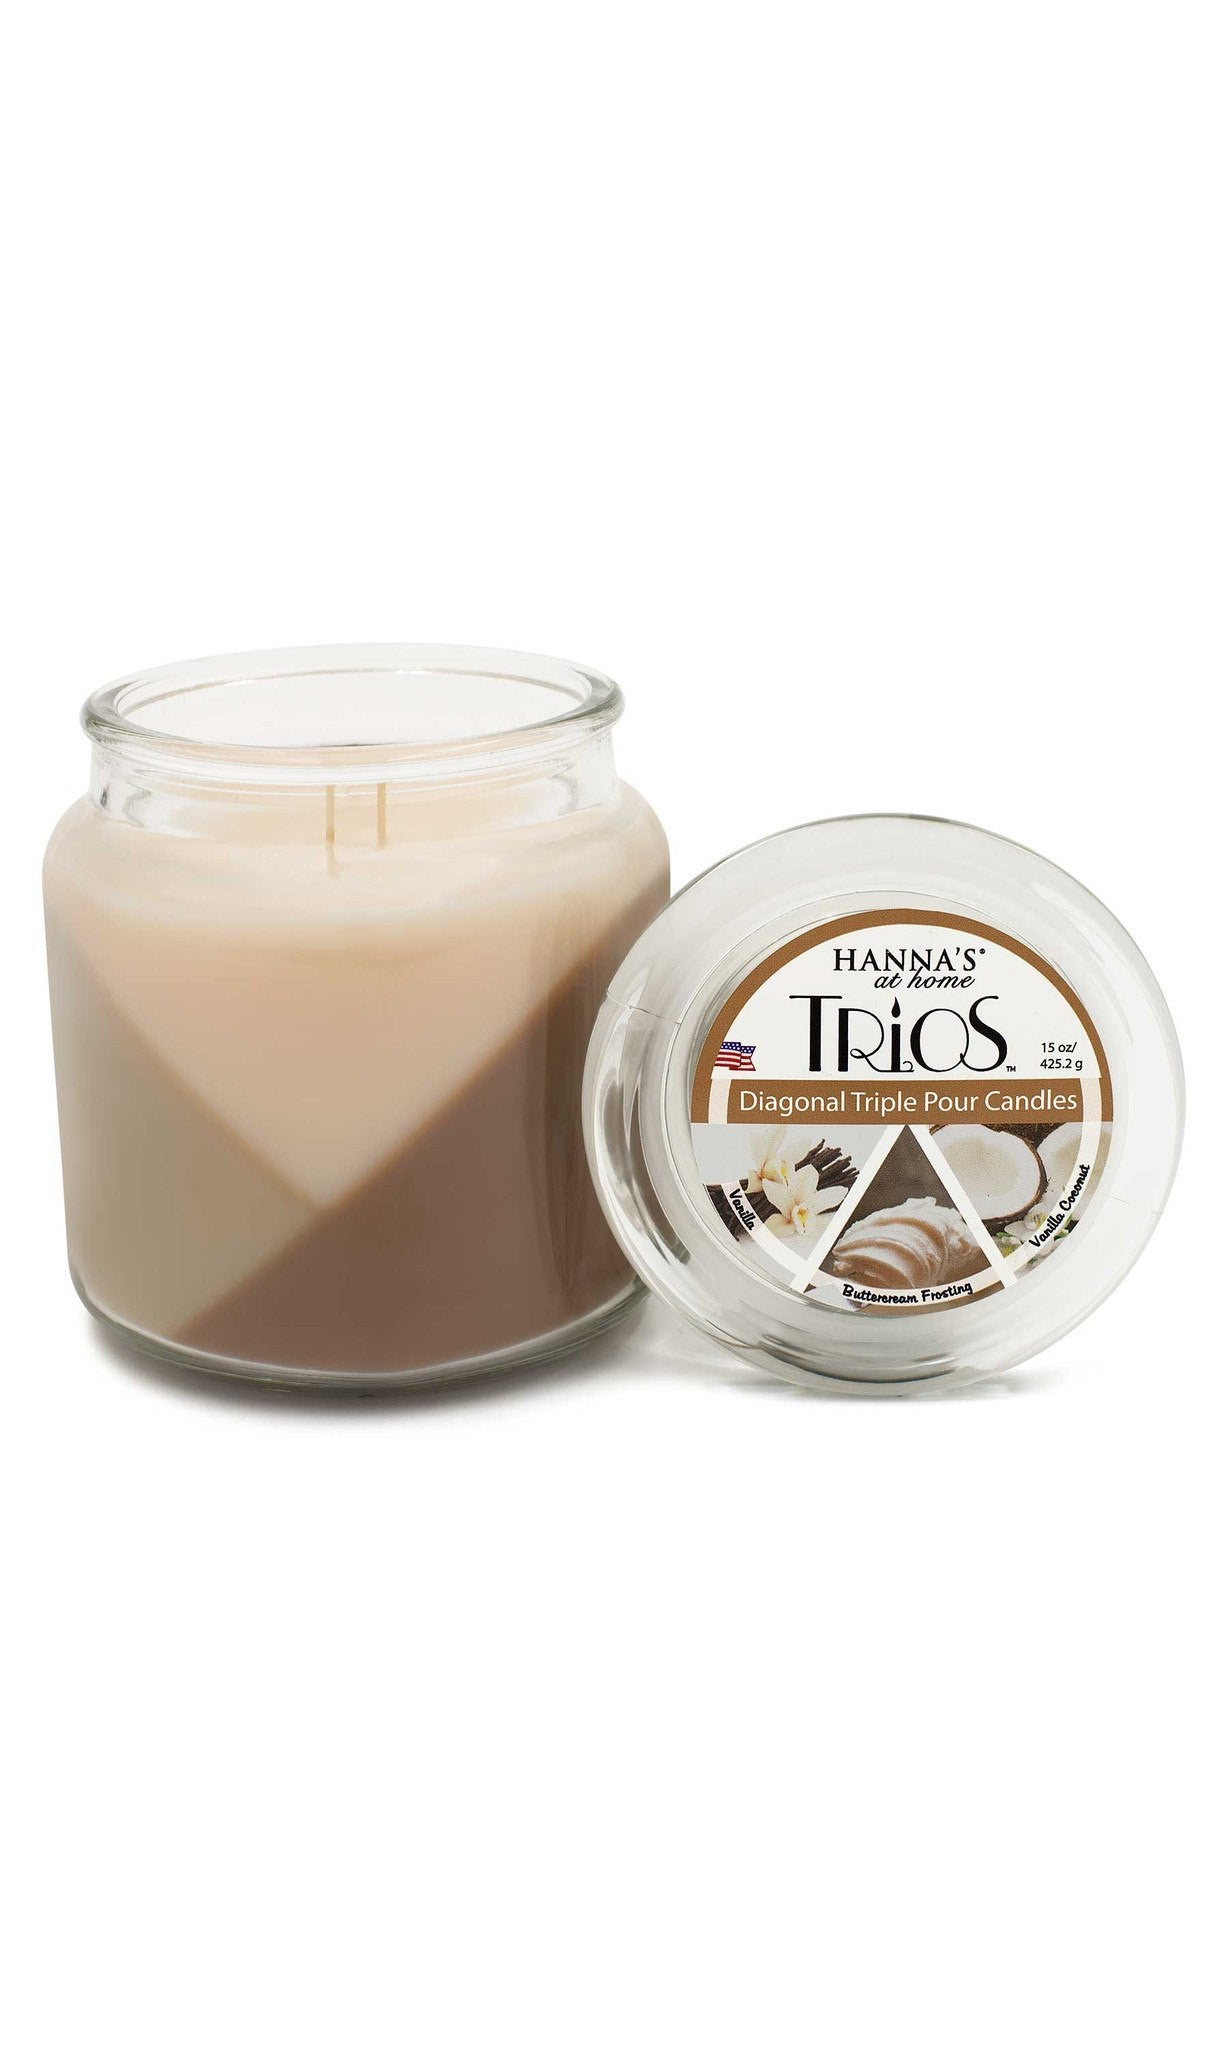 Trios Triple Pour Vanilla Scented Candle - Candlemart.com